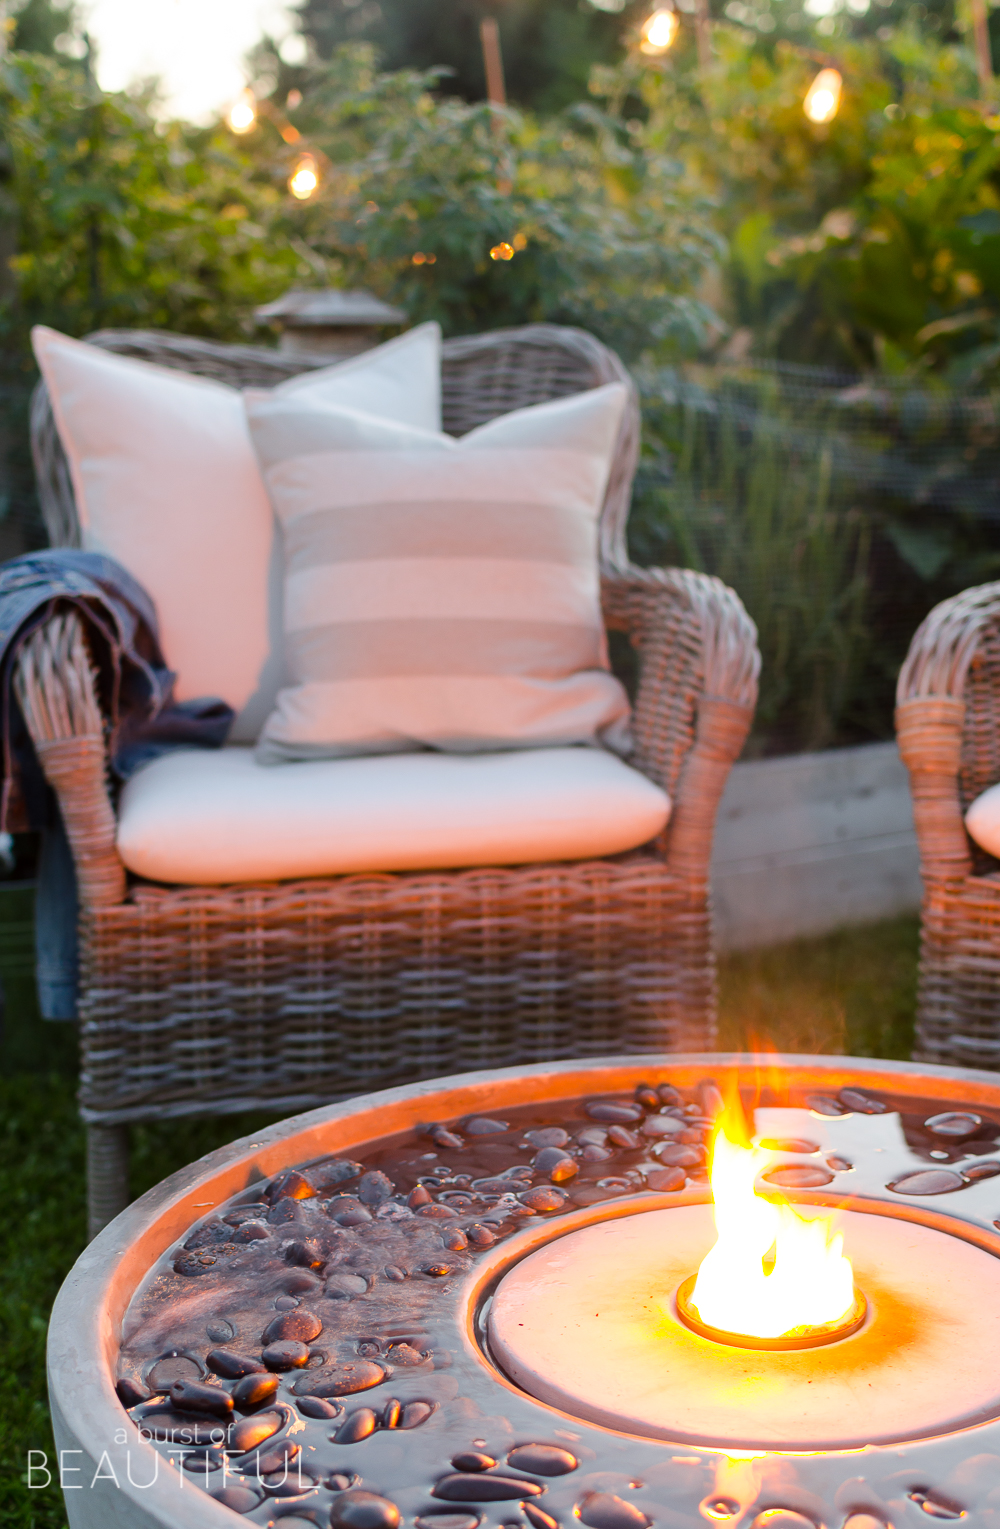 Create a cozy outdoor living space with ambiance using a fire fountain and Edison string lights.